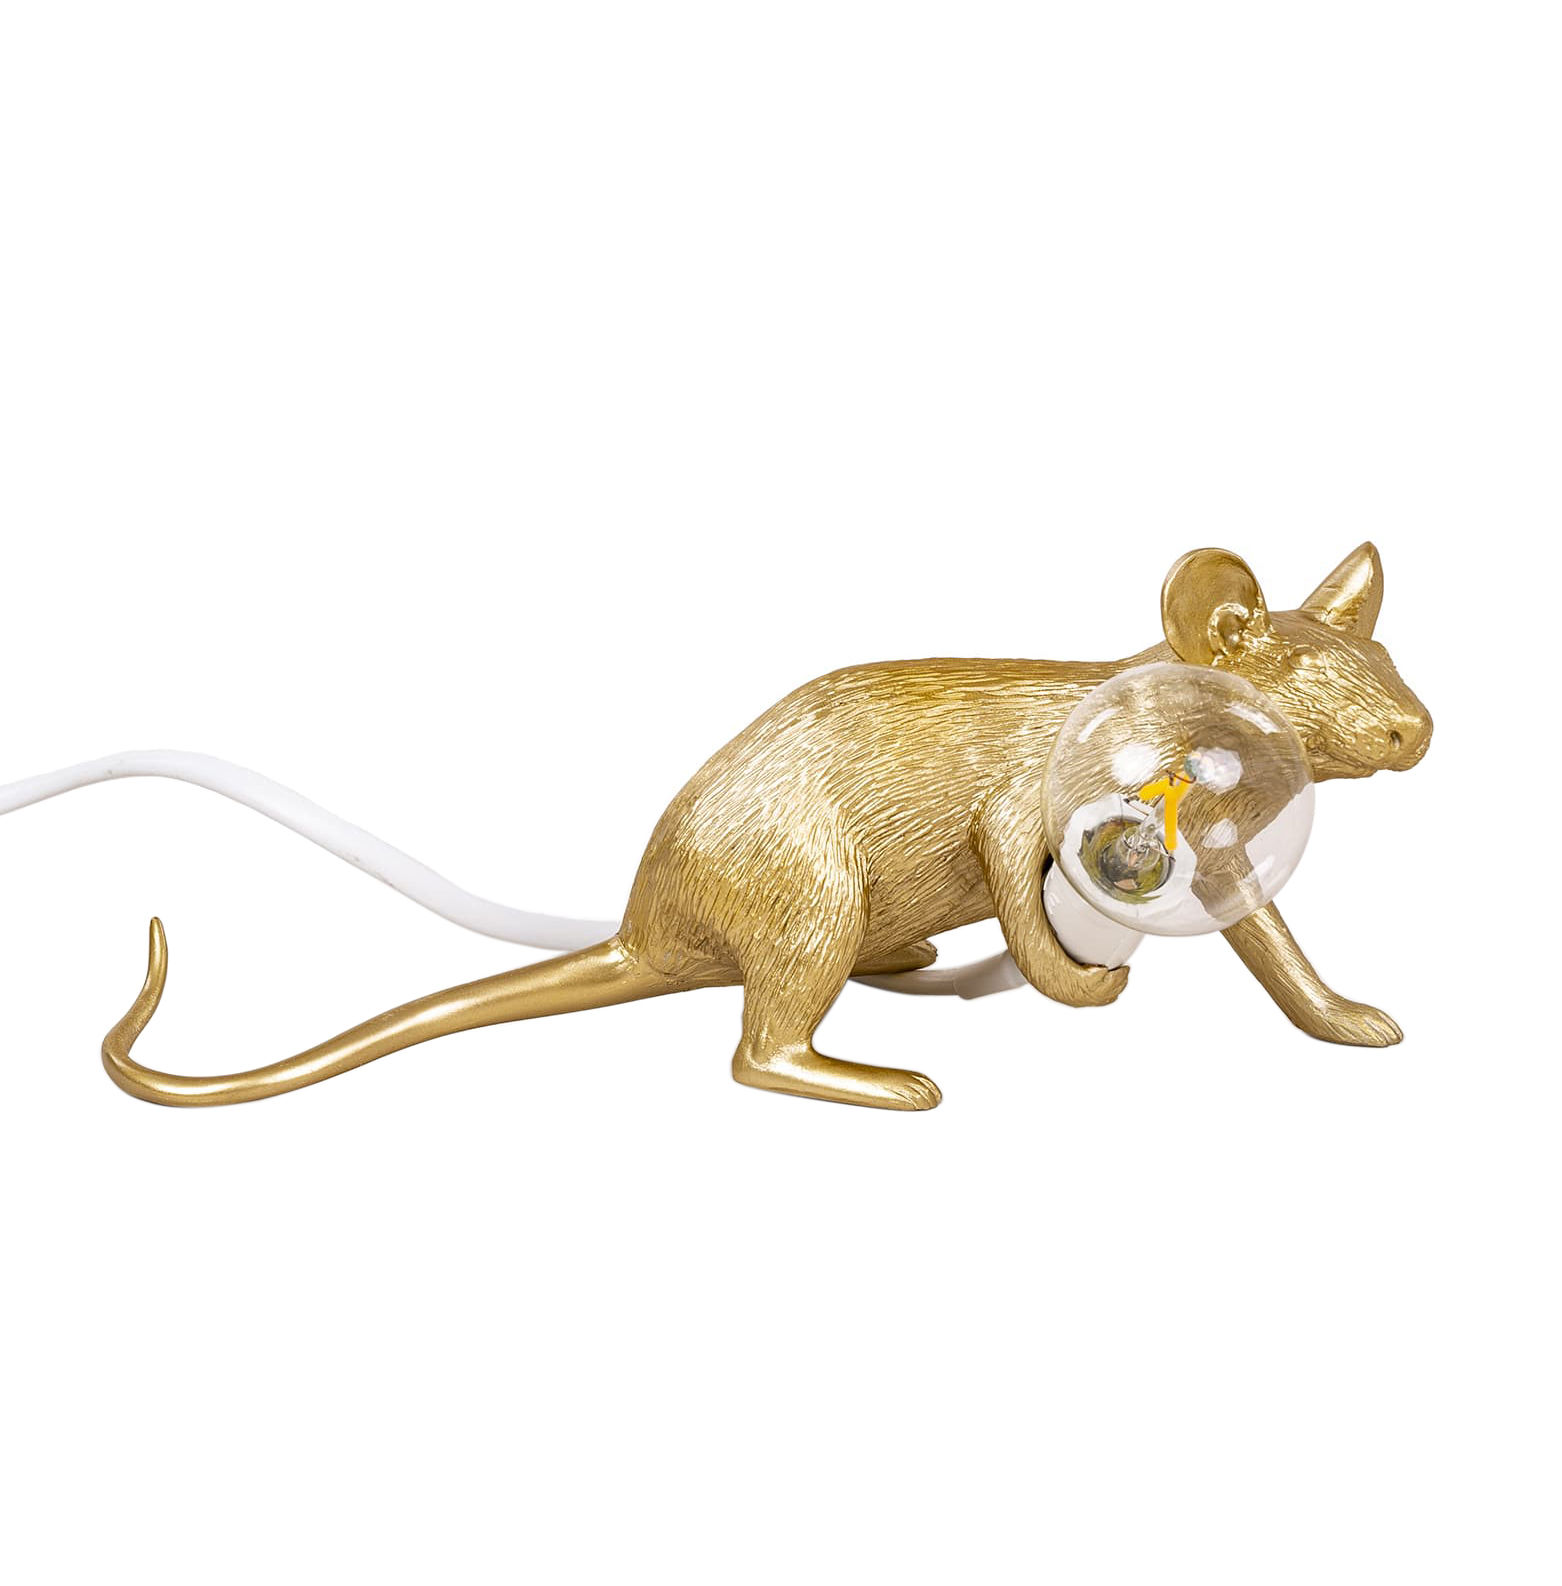 Decoration - Children's Home Accessories - Mouse Lie Down #3  Table lamp - / Reclining mouse by Seletti - Reclining mouse / Gold - Resin